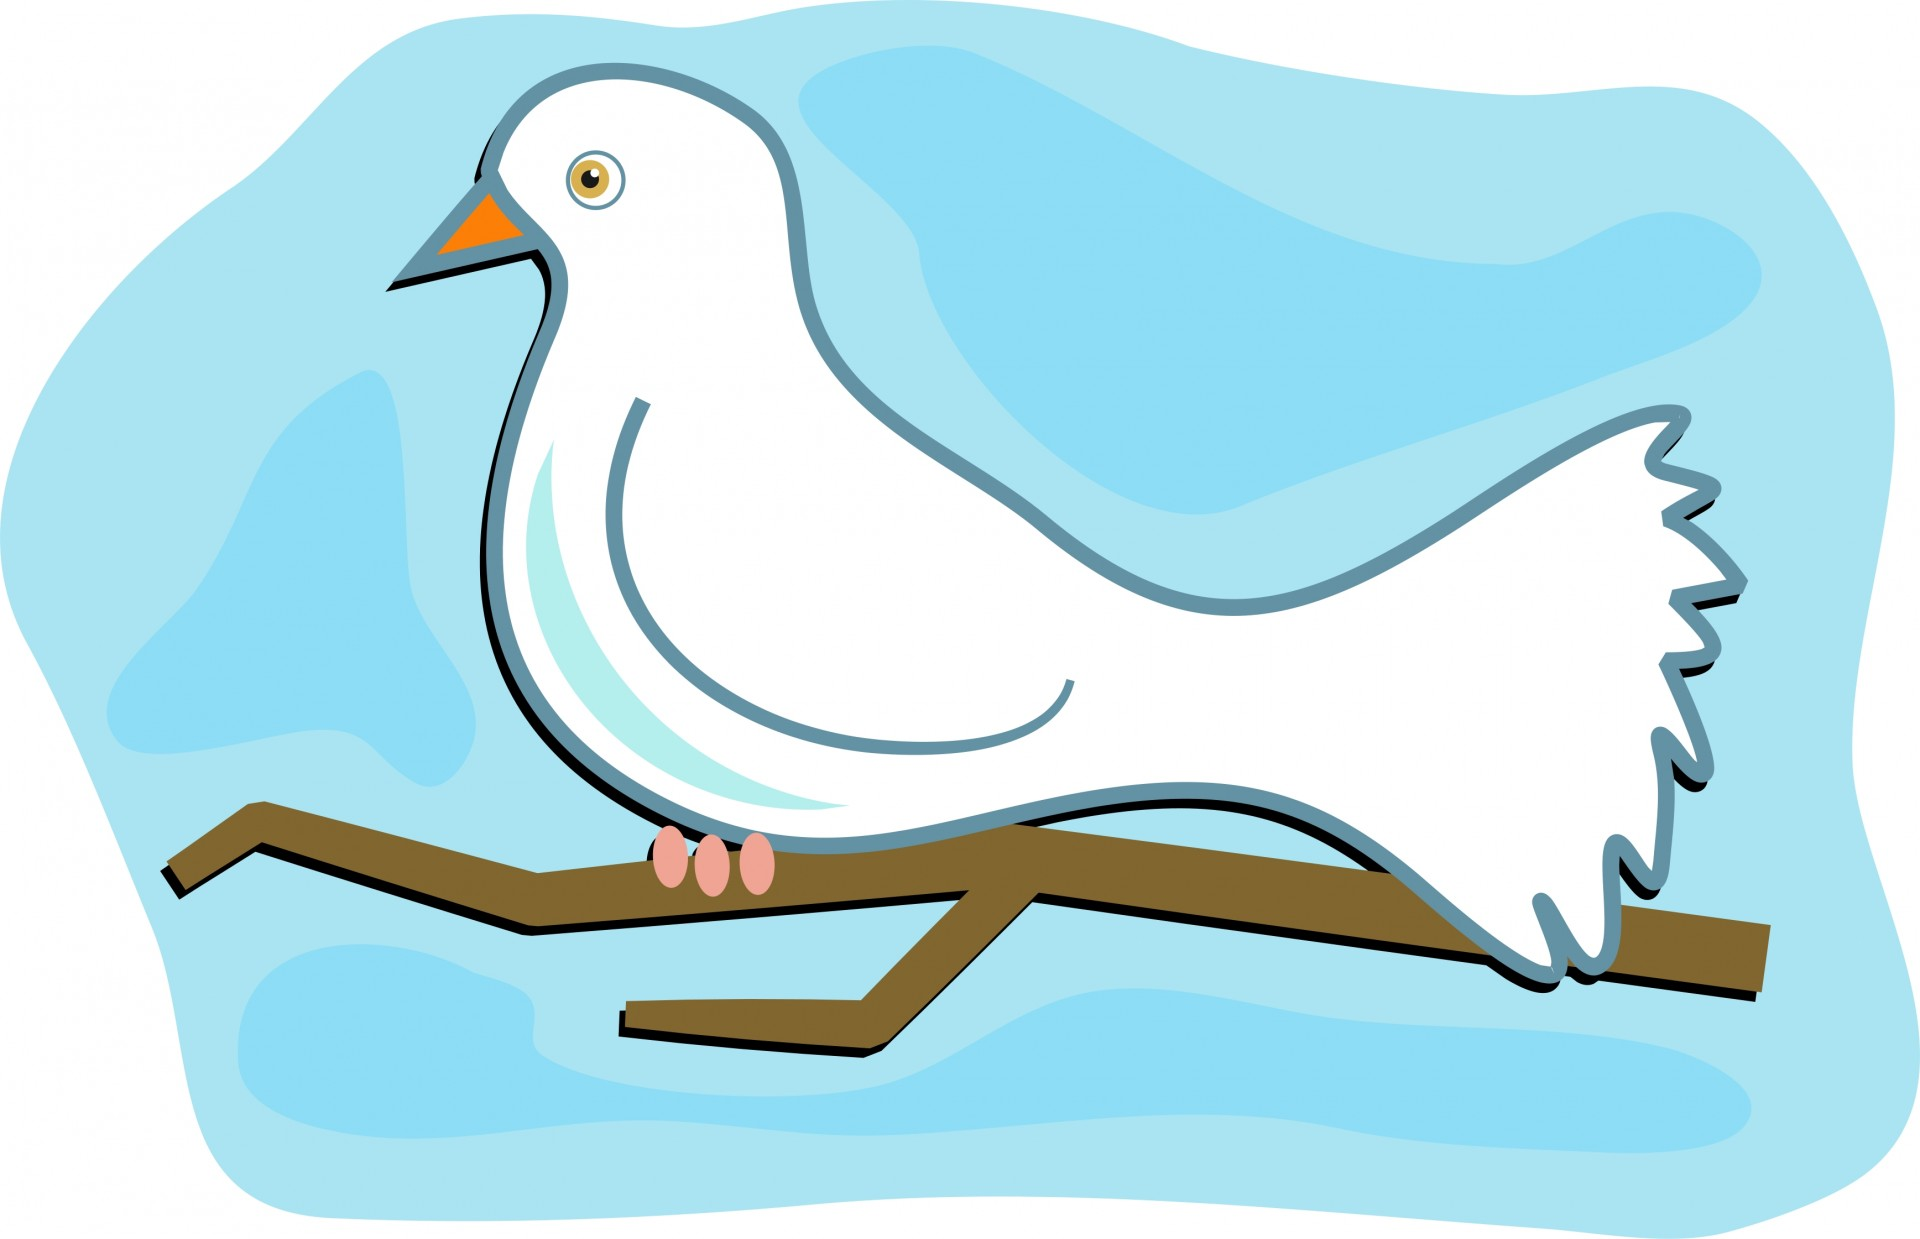 Christian clip art graphic descending dove solid white dove.